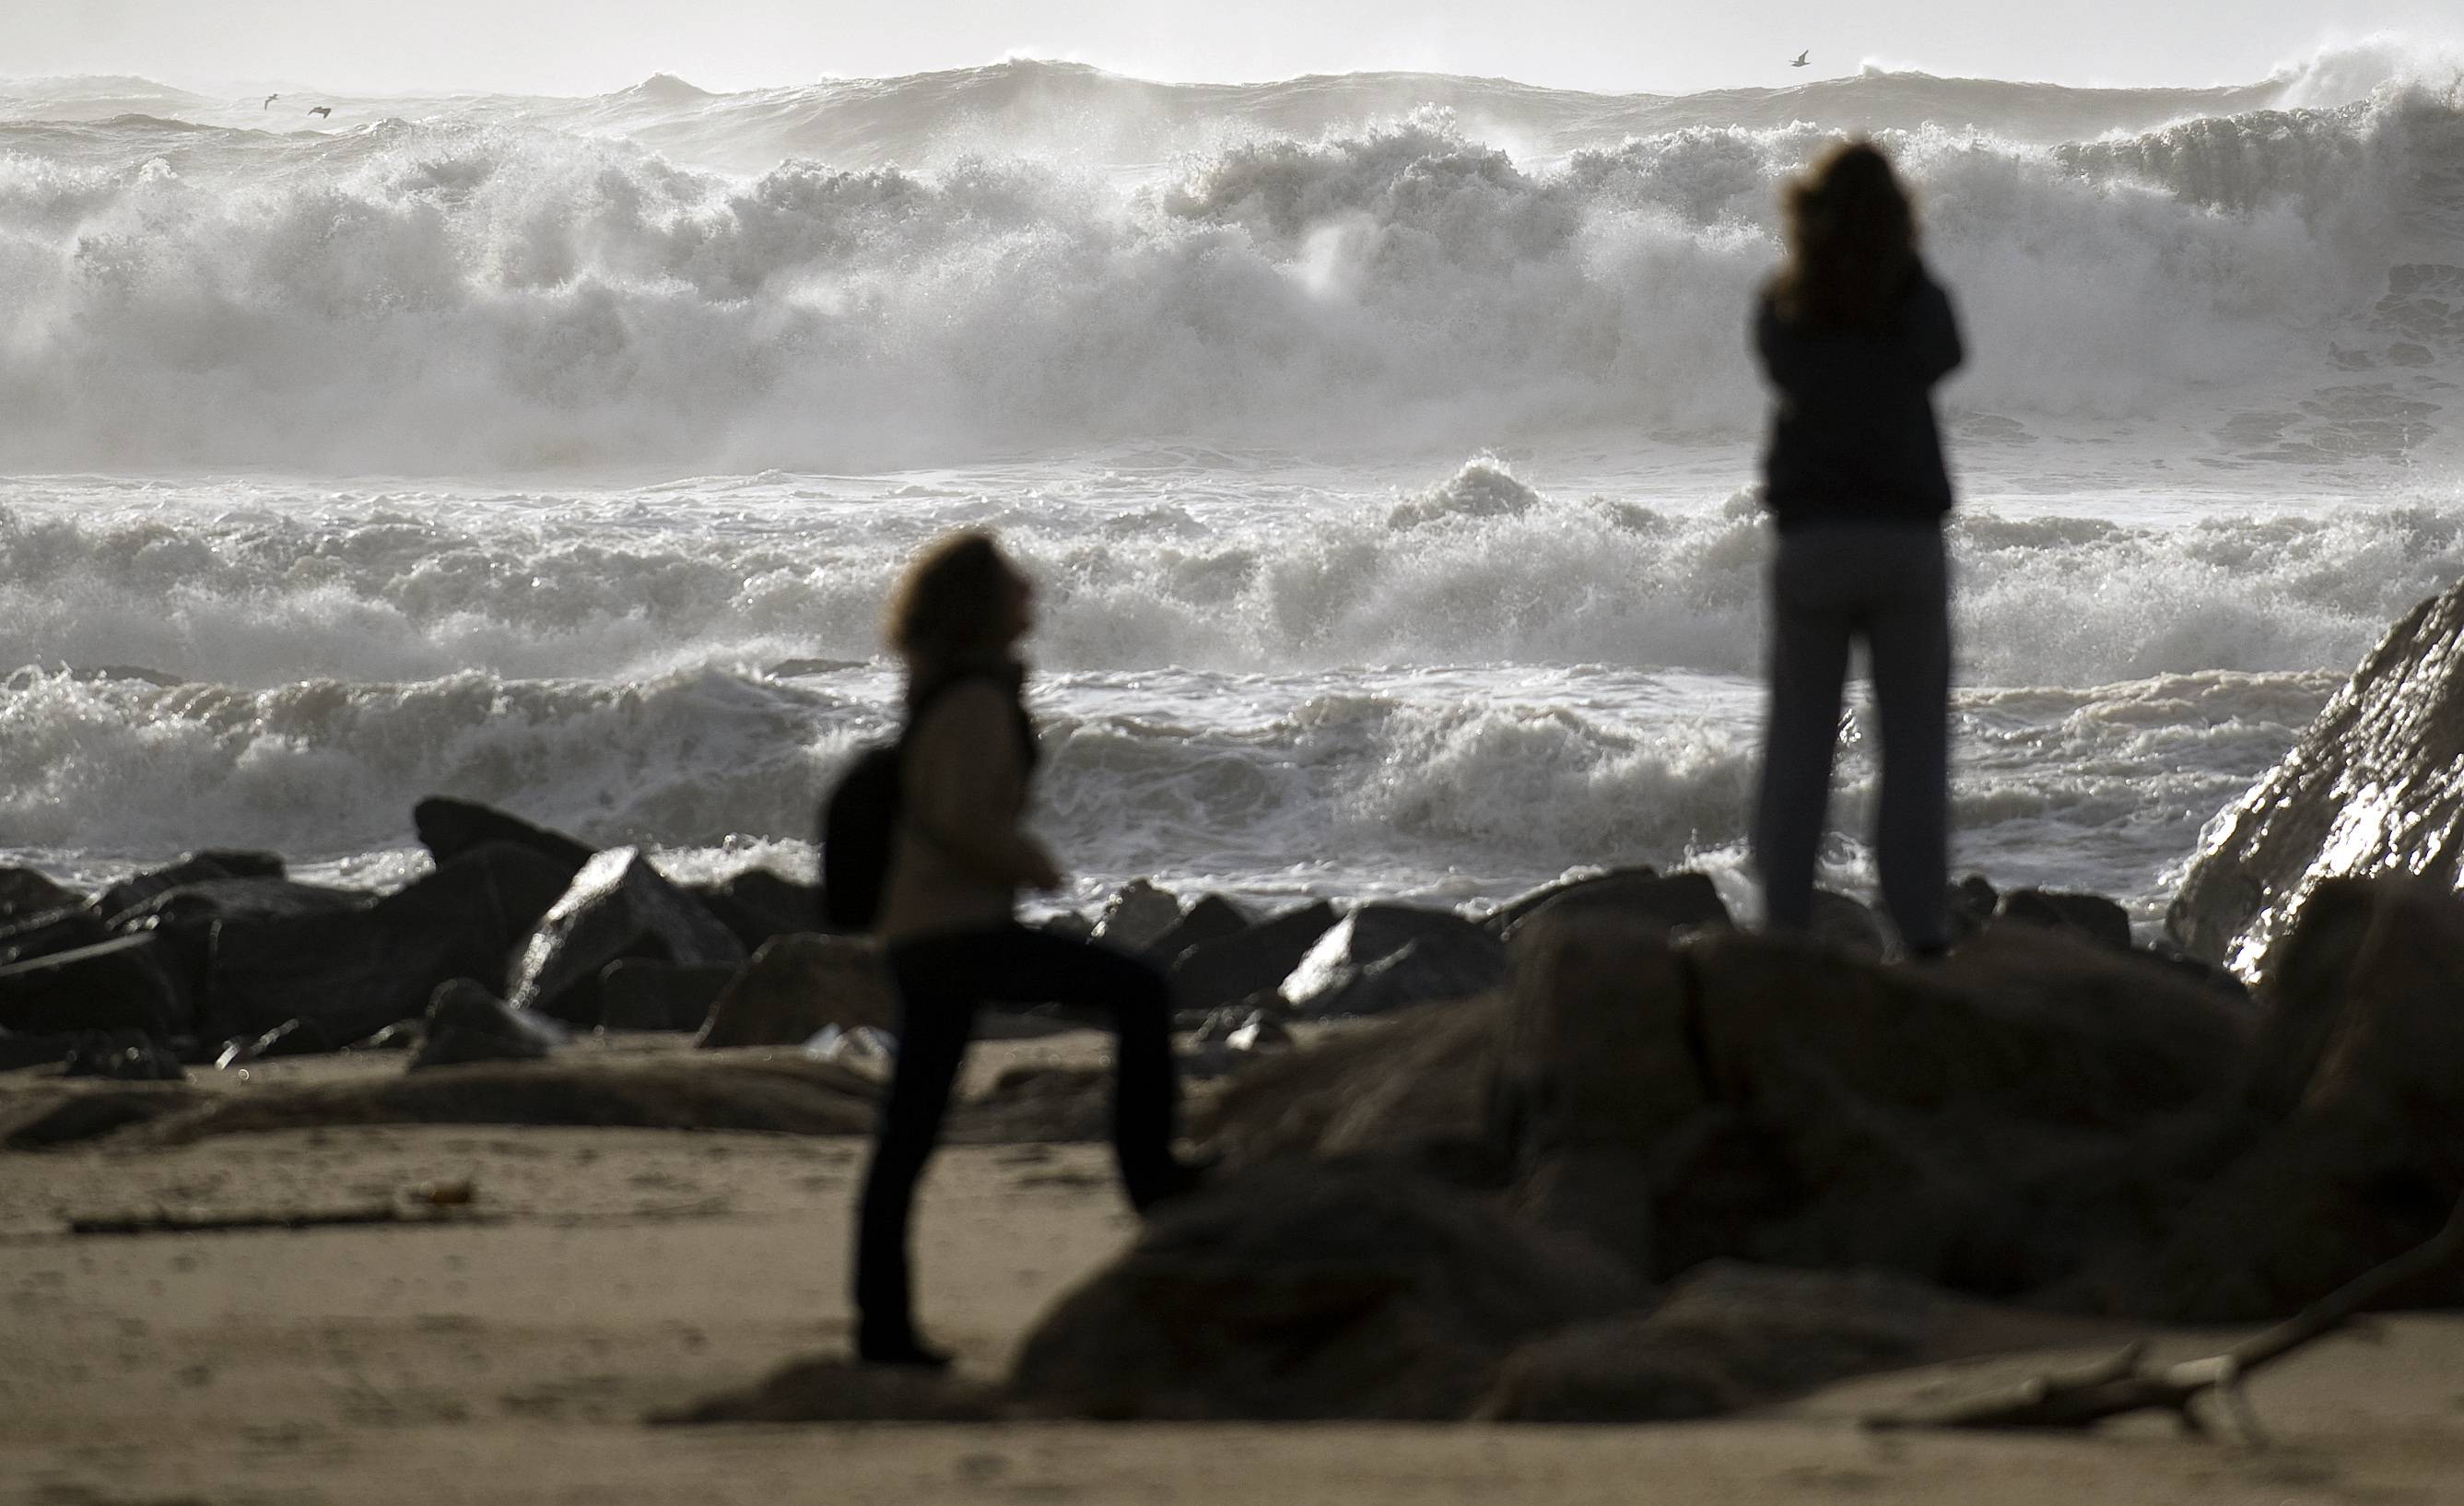 Women take photographs as rough waves lash the Miramar beach, Vila Nova de Gaia, northern Portugal Saturday, Feb. 8, 2014. The Portuguese weather institute put the entire coast of Portugal on red alert, the most serious in a scale of four, due to rough seas.